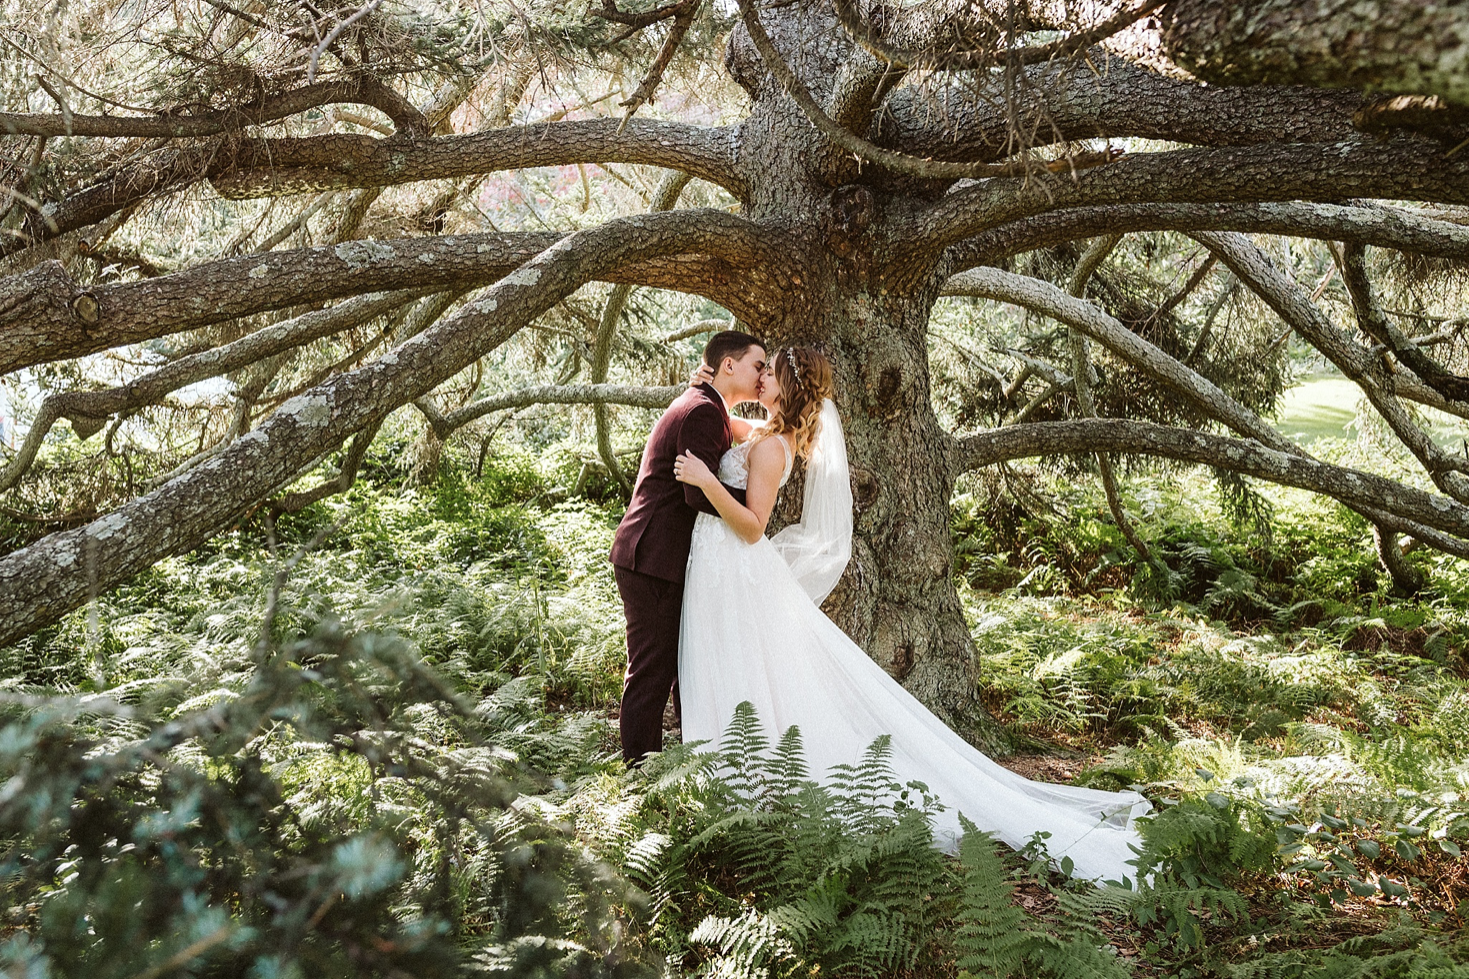 A wedding couple is kissing each other under a tree at the Moraine Farm., one of the wedding venues in Massachusetts.